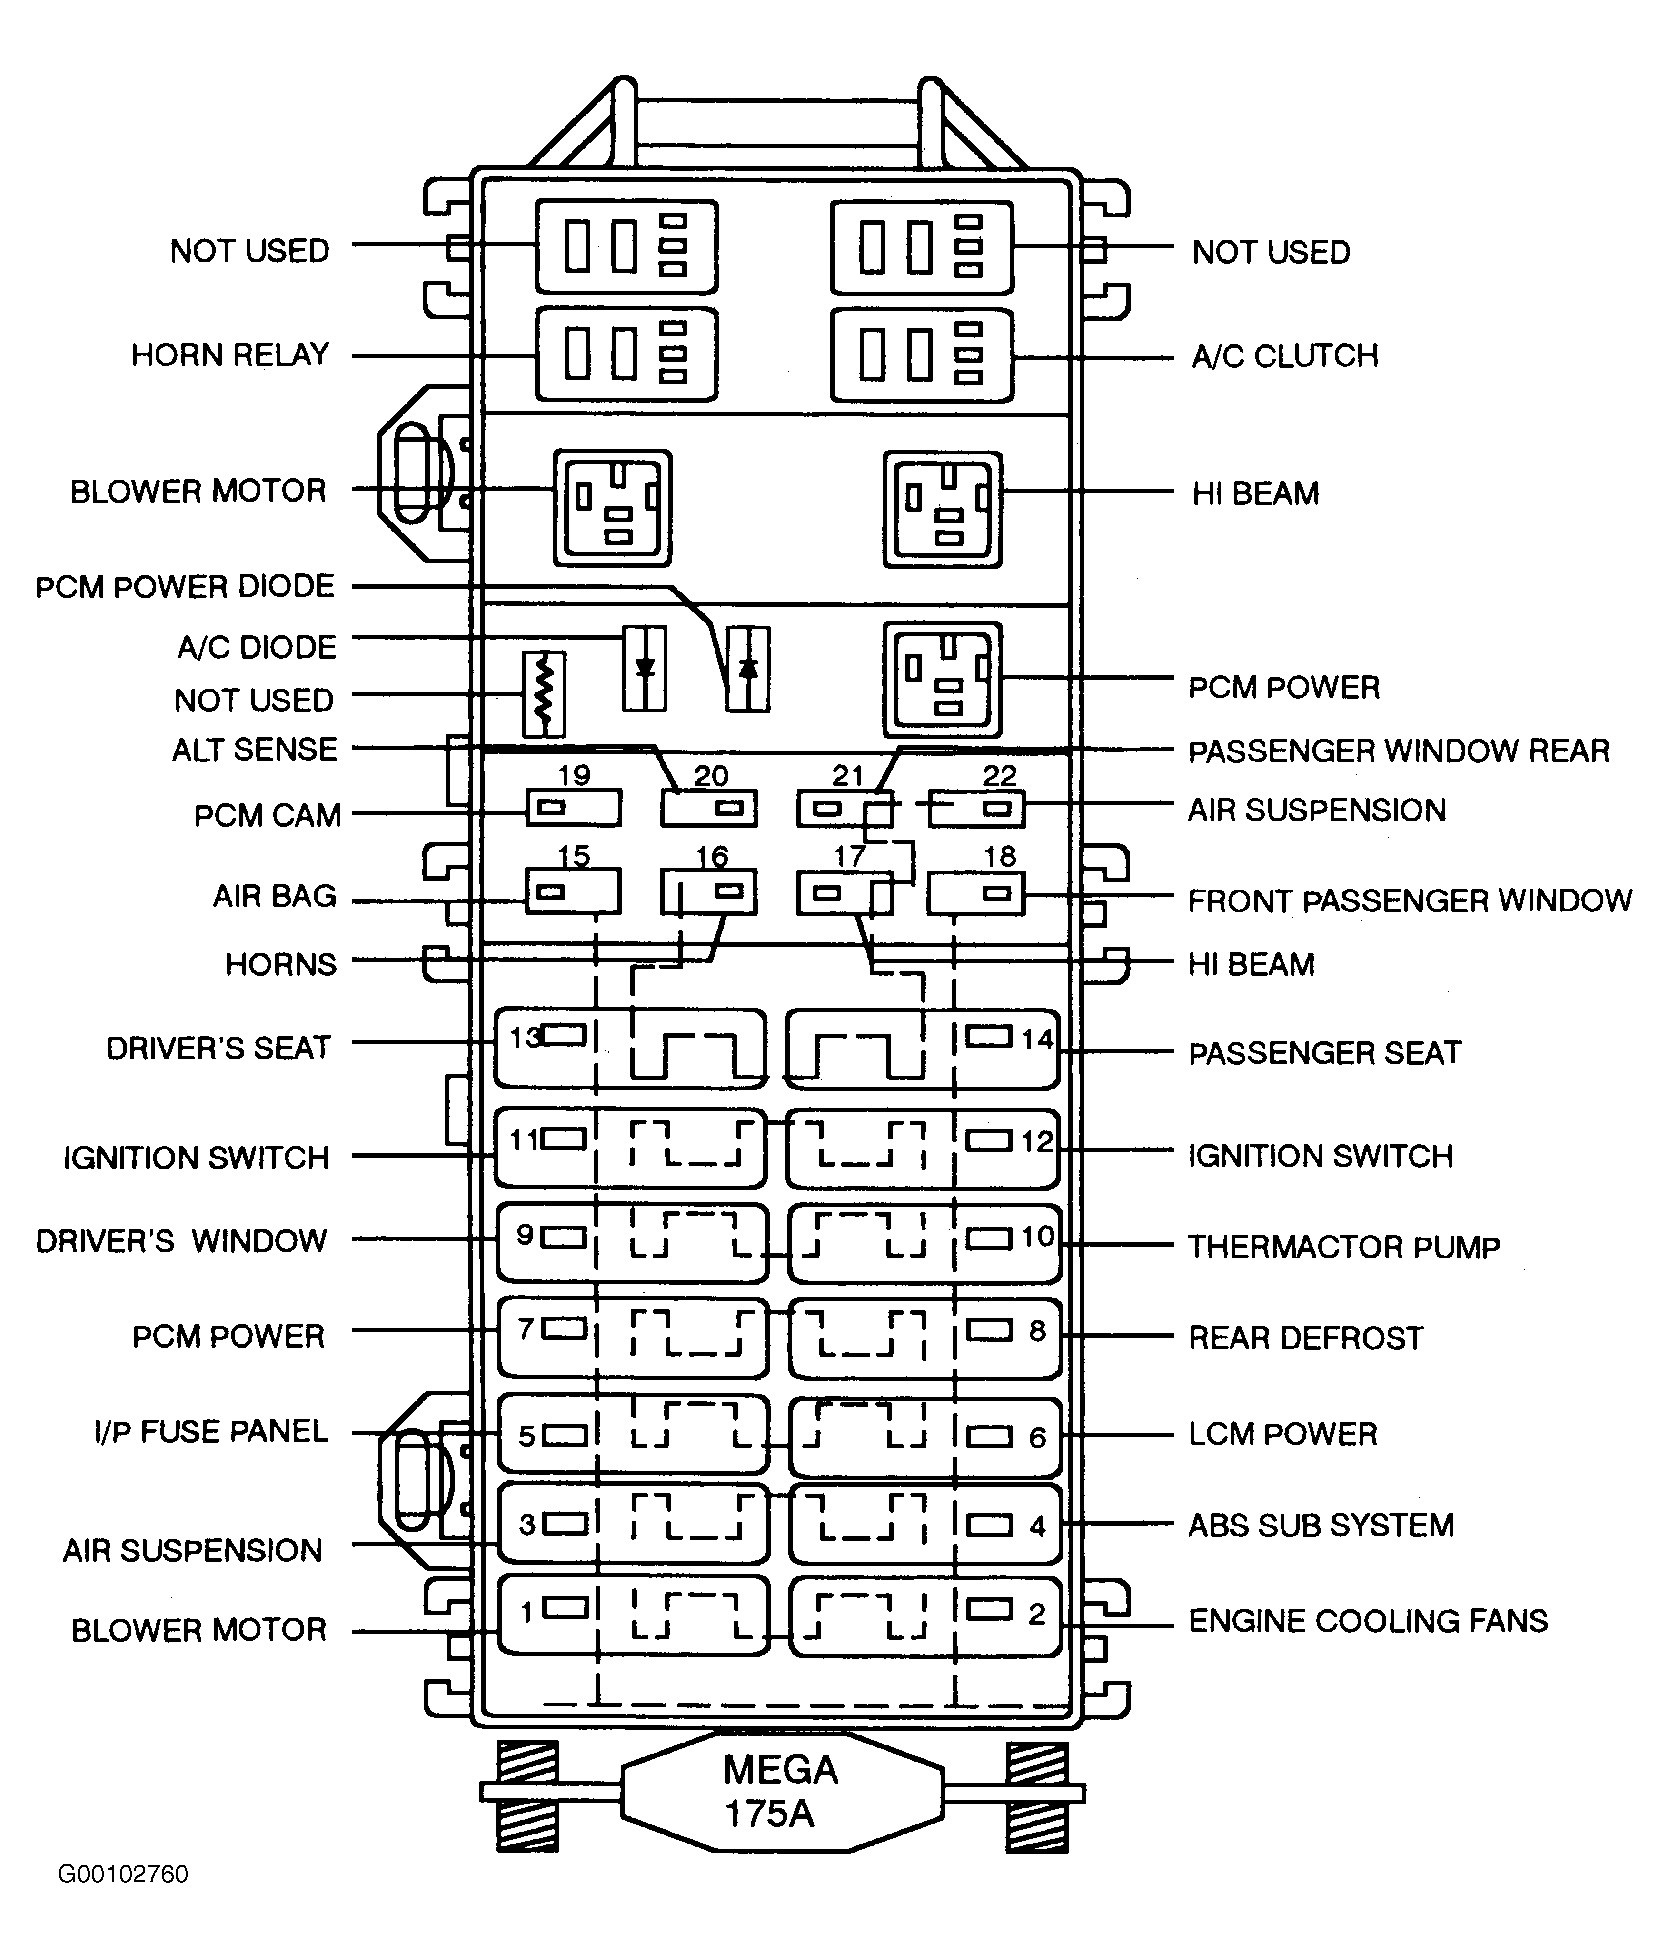 small resolution of ep3 fuse diagram electrical wiring diagrams rh 21 lowrysdriedmeat de electrical fuse diagram ep3 interior fuse